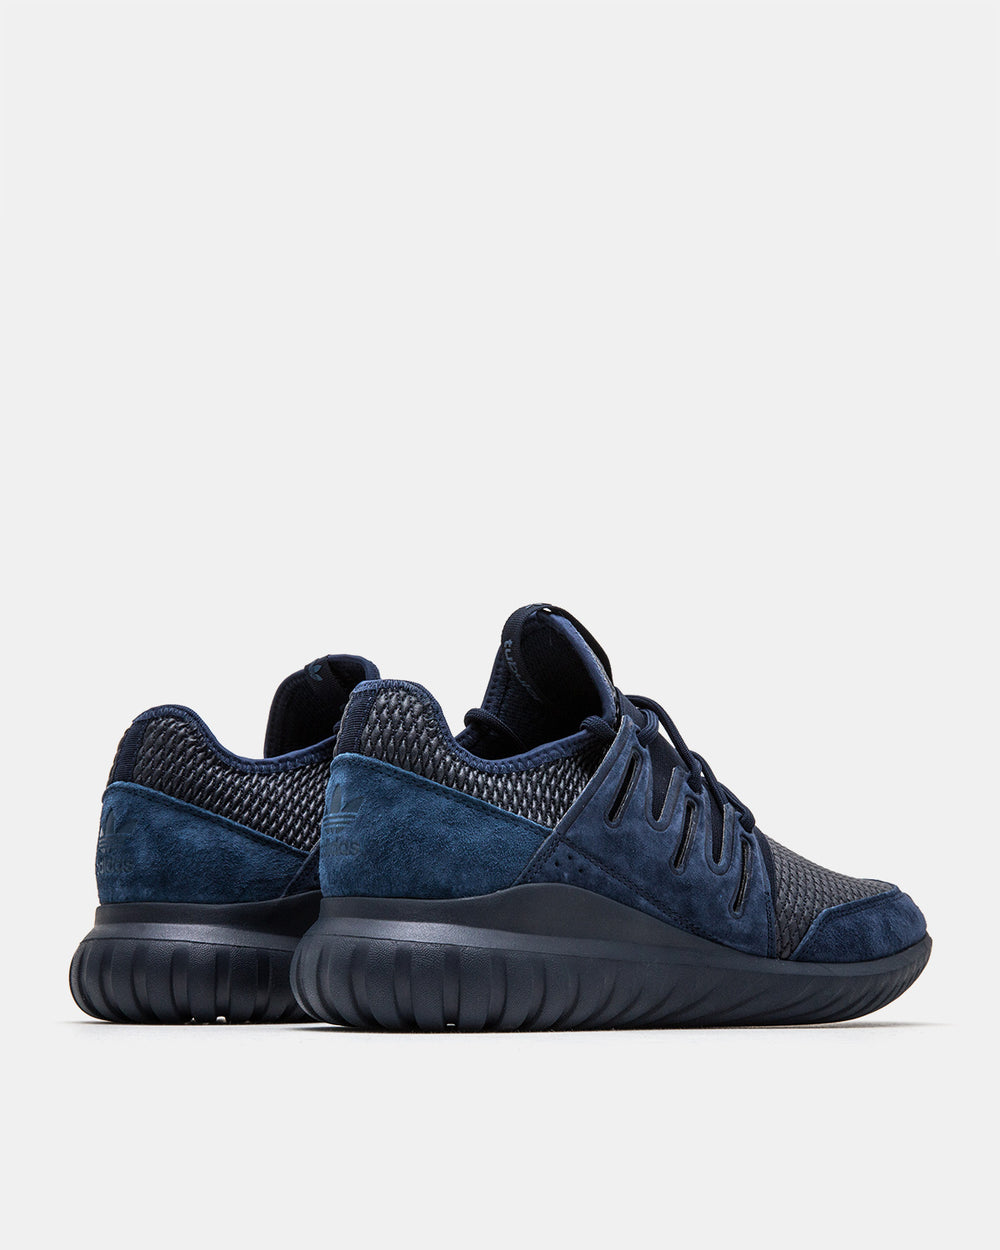 adidas - Tubular Radial (Collegiate Navy | Night Marine)